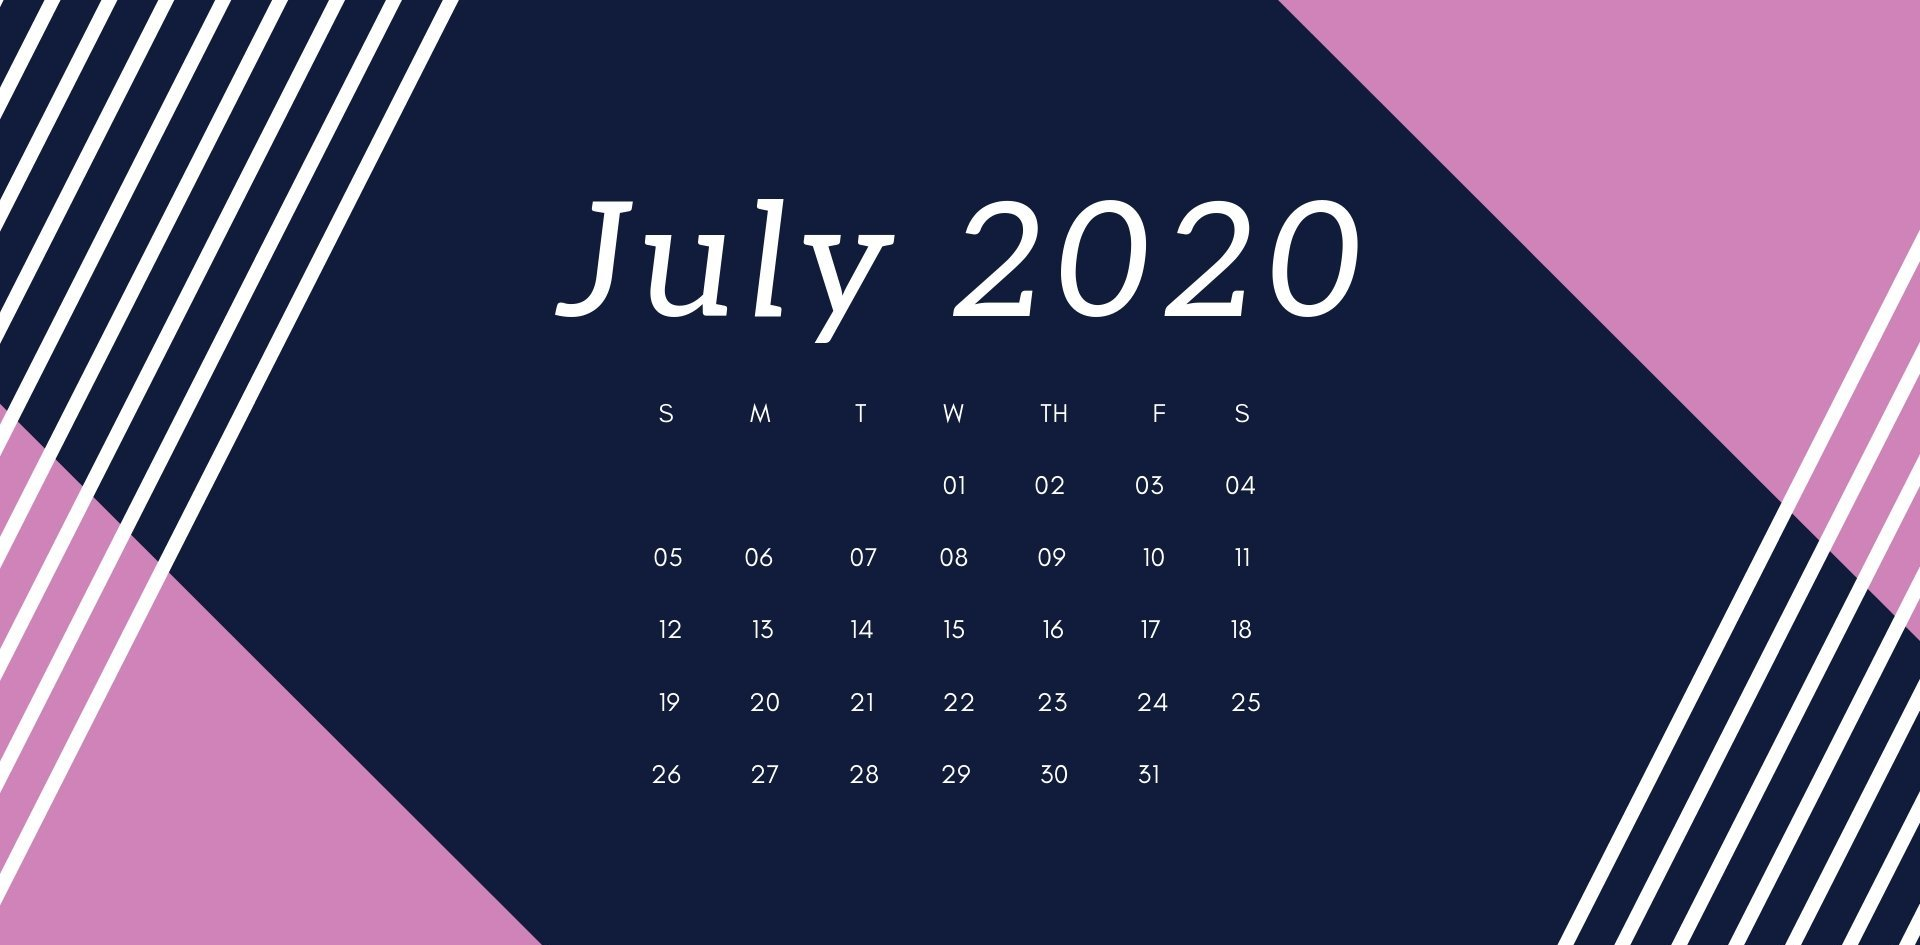 June 2020 Calendar HD Wallpaper